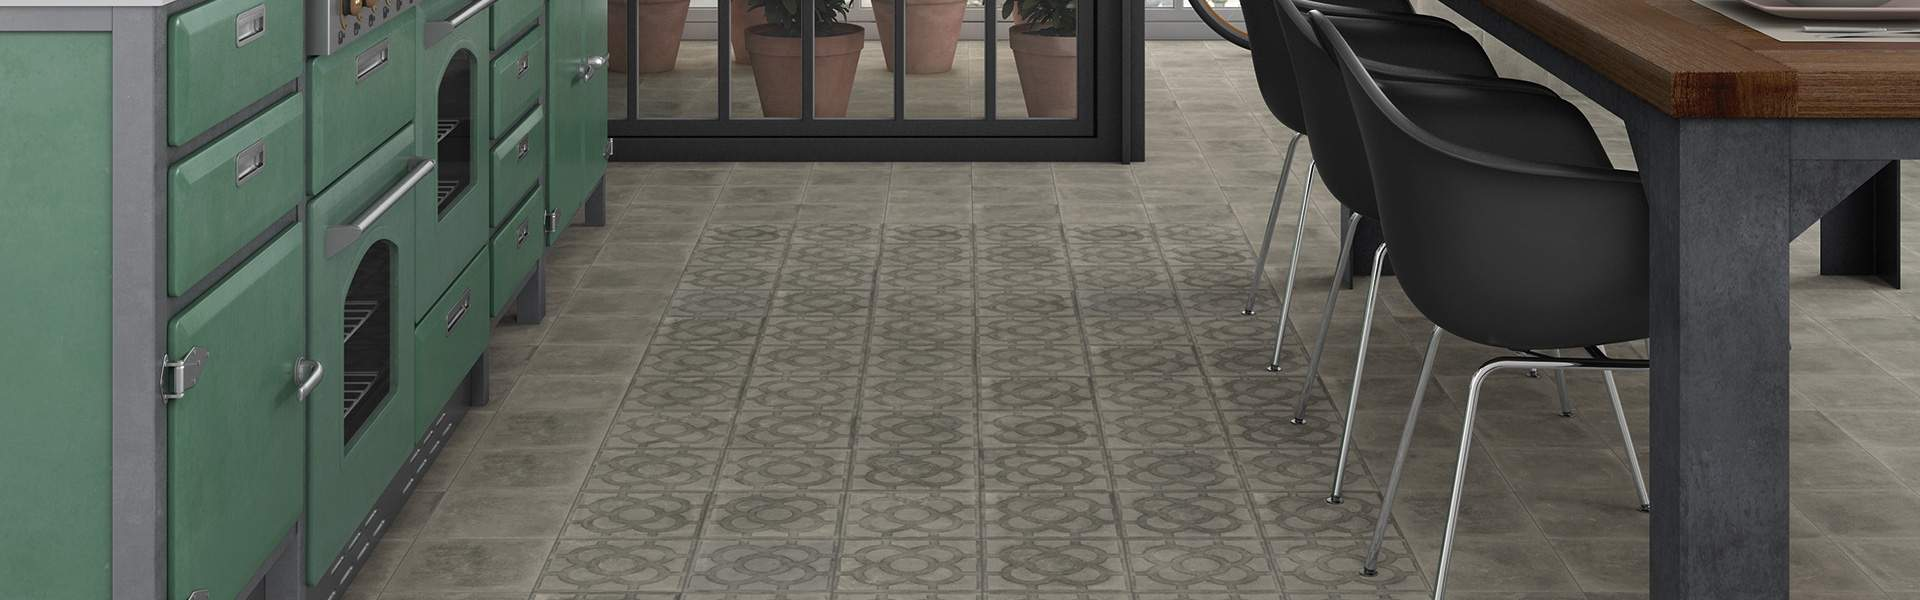 Small Grey Antislip Tiles